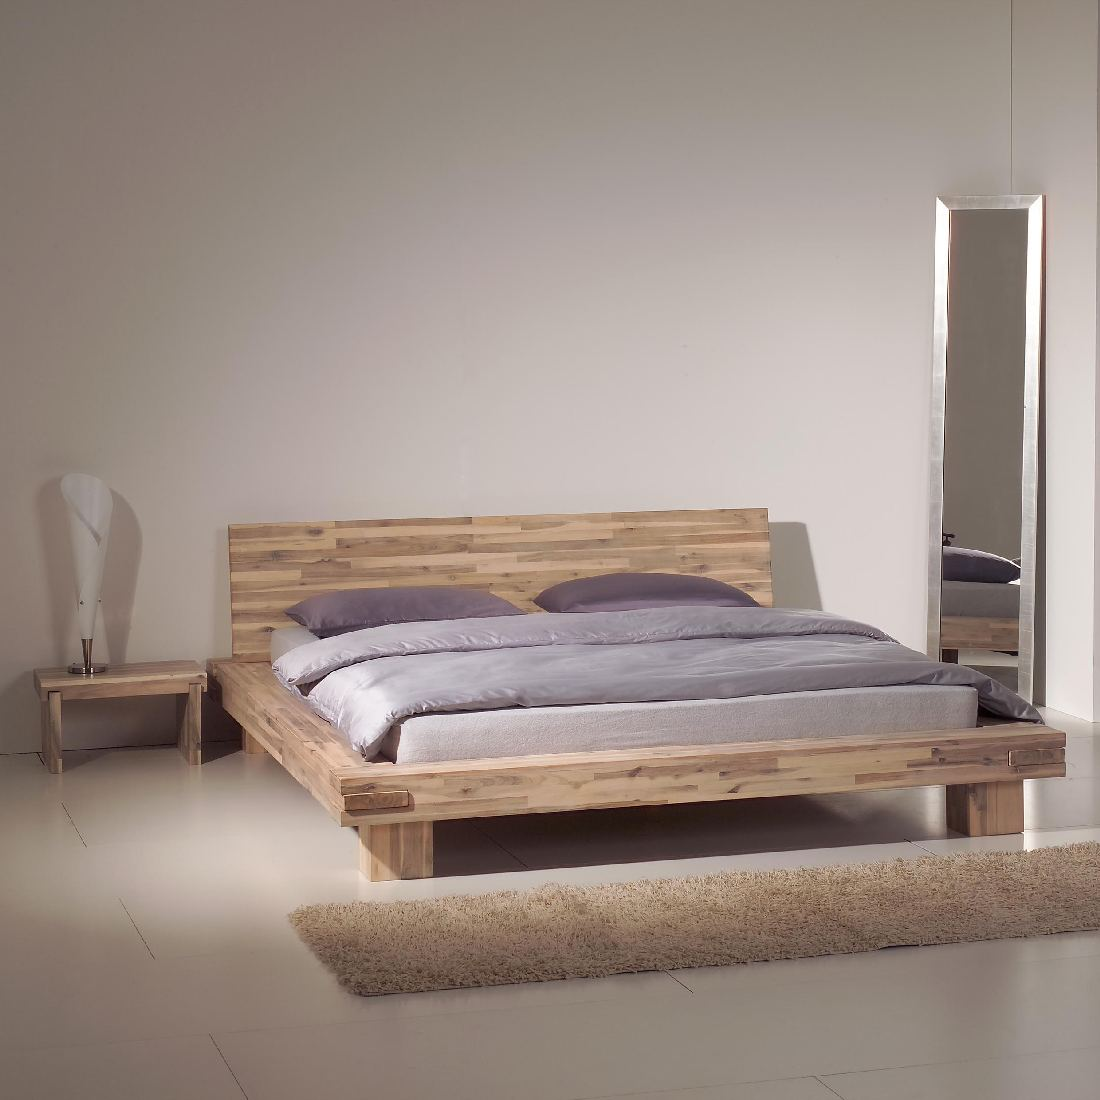 holzbett akazie massivholz 160x200 doppelbett futonbett. Black Bedroom Furniture Sets. Home Design Ideas